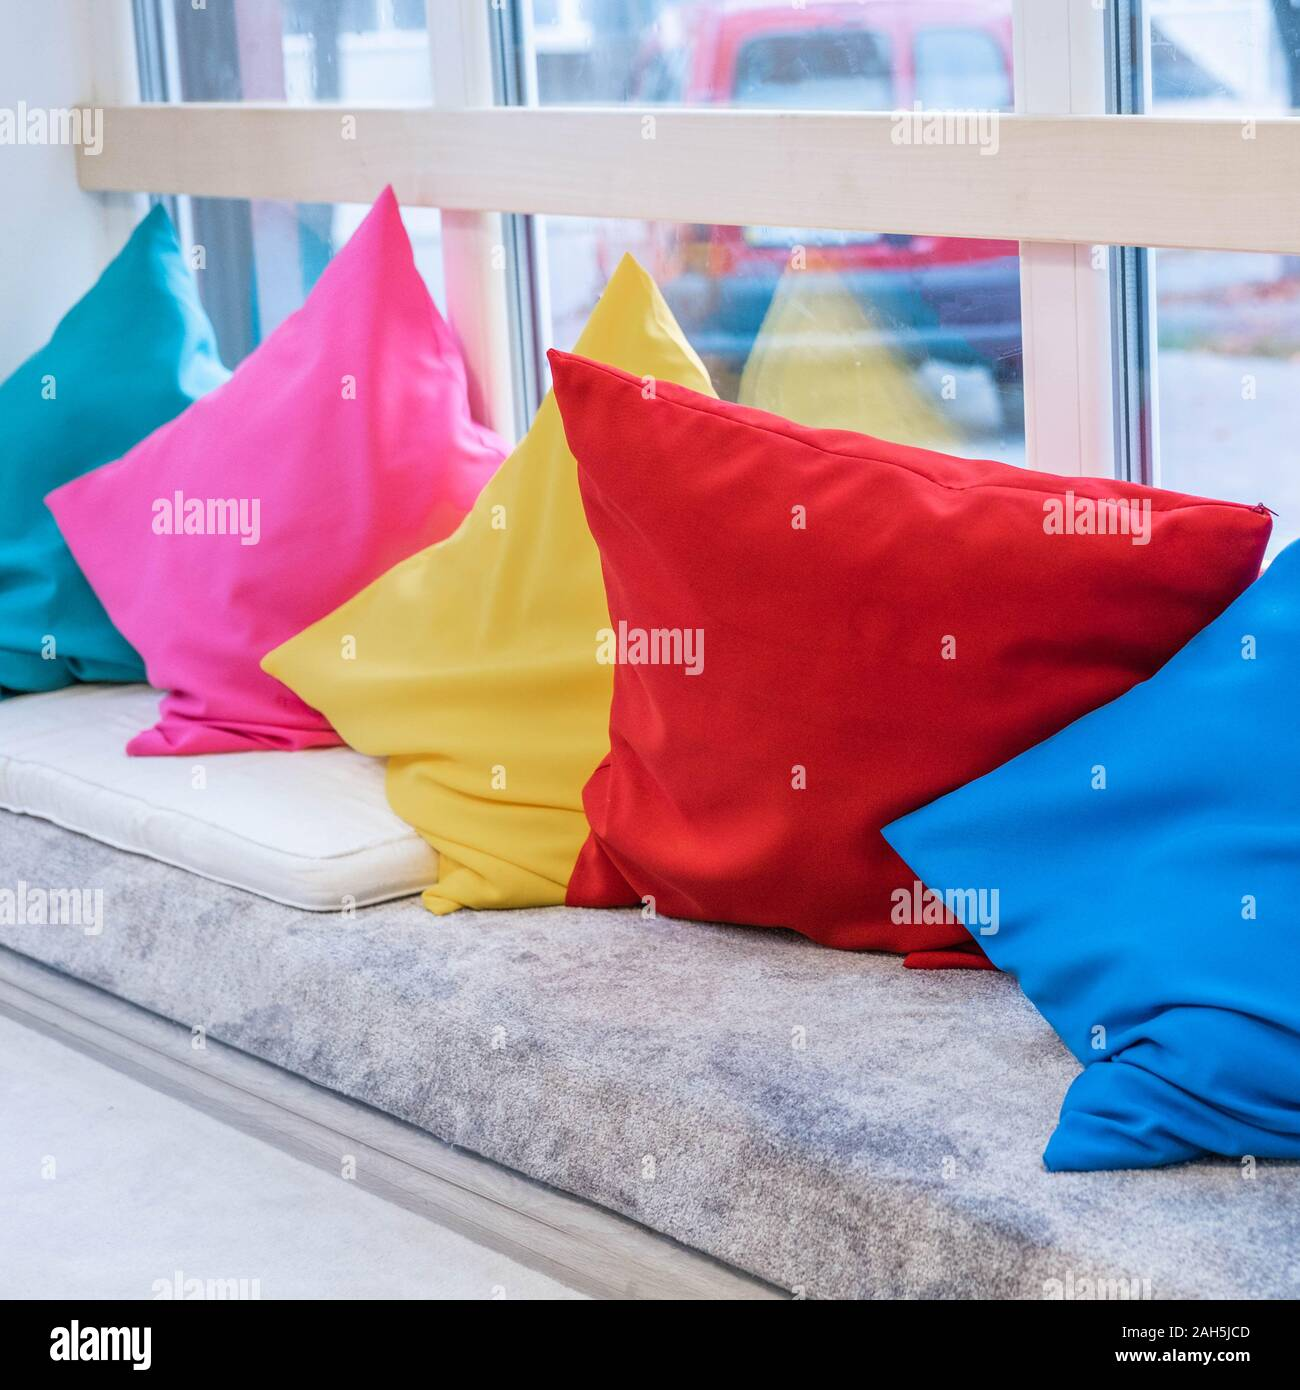 Cozy Design Of The Sofa With Pillows Of Different Colors Rainbow Colors Stock Photo Alamy